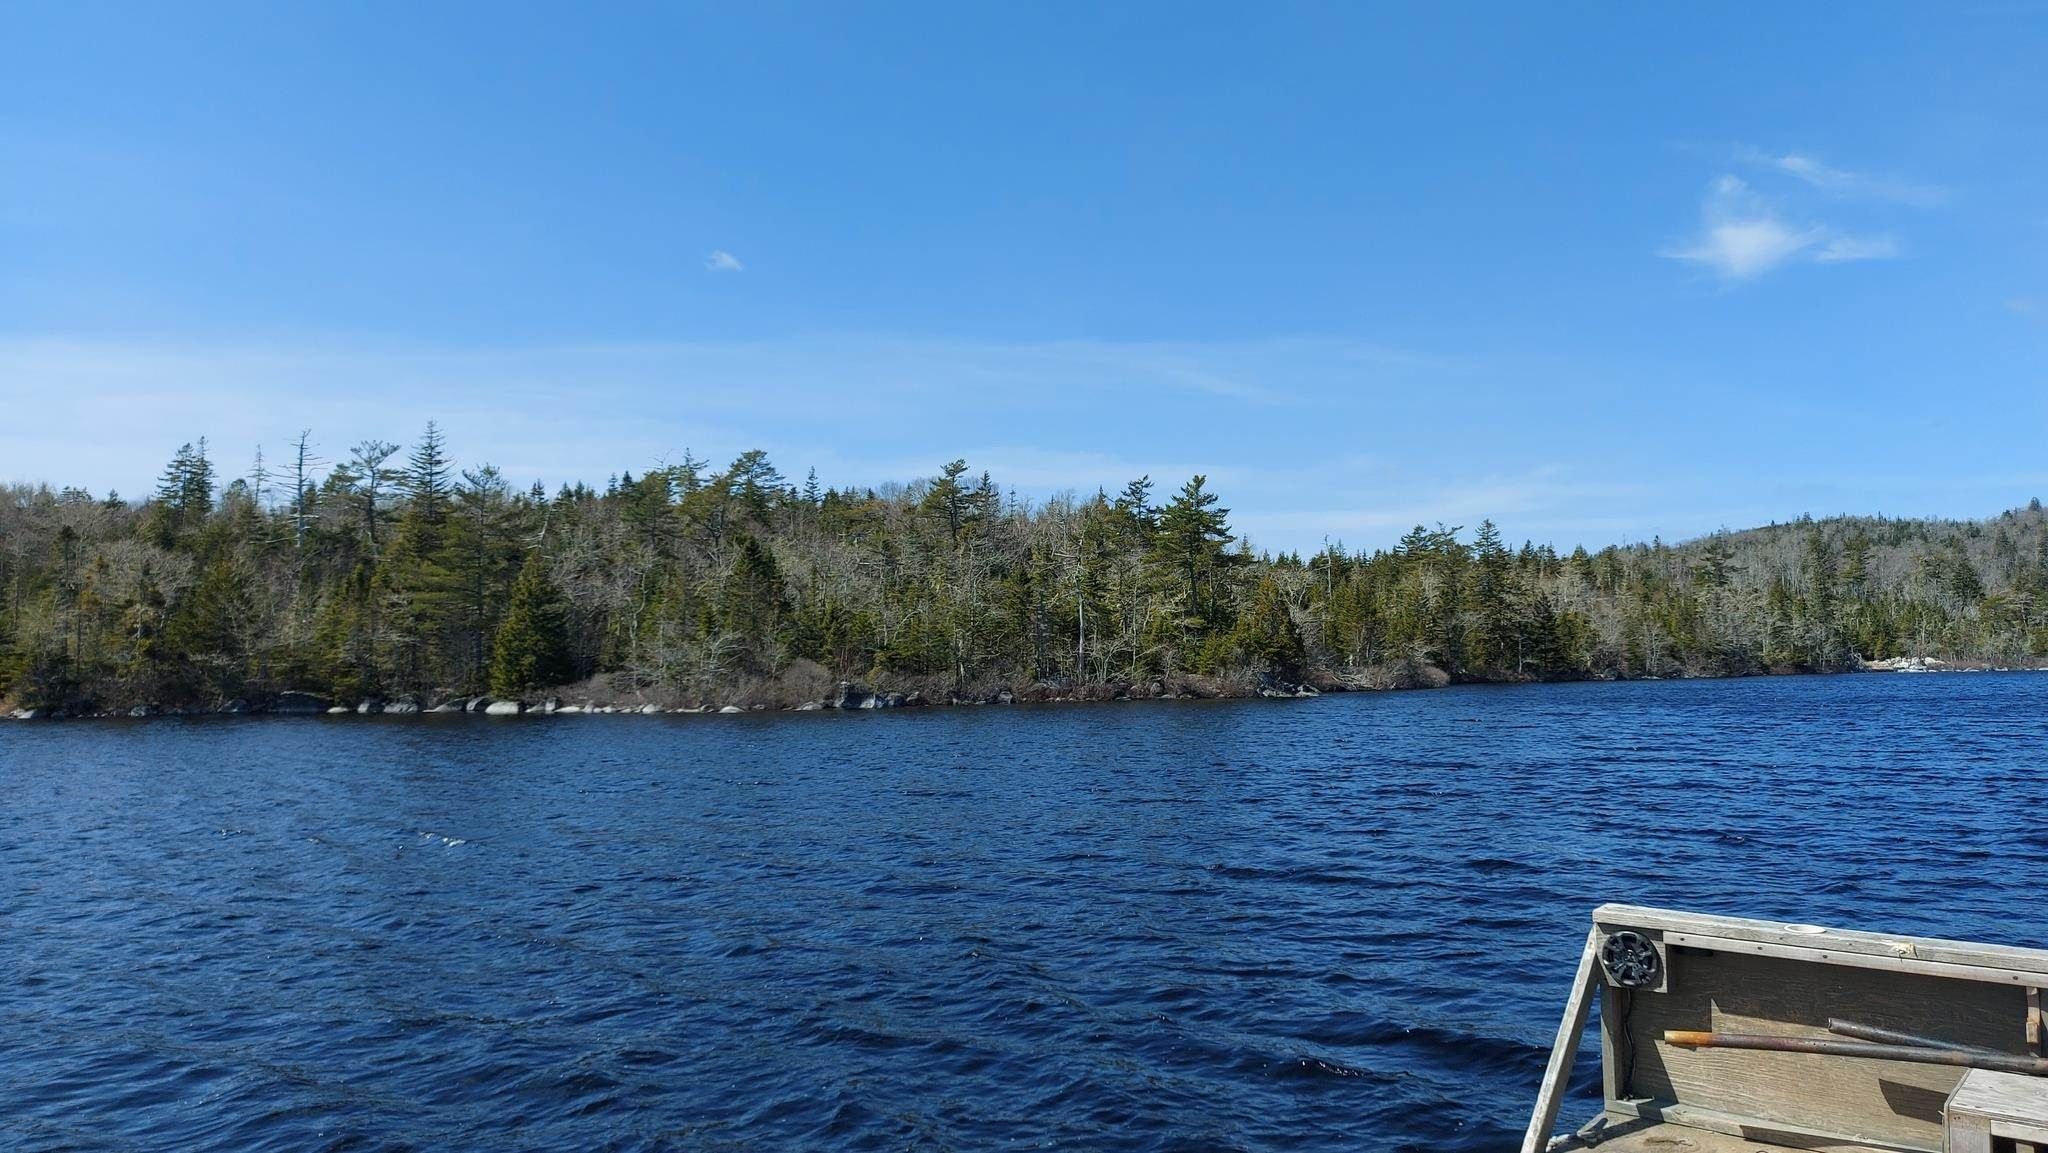 Main Photo: Lot 3 1196 Lake Charlotte Way in Upper Lakeville: 35-Halifax County East Vacant Land for sale (Halifax-Dartmouth)  : MLS®# 202113703